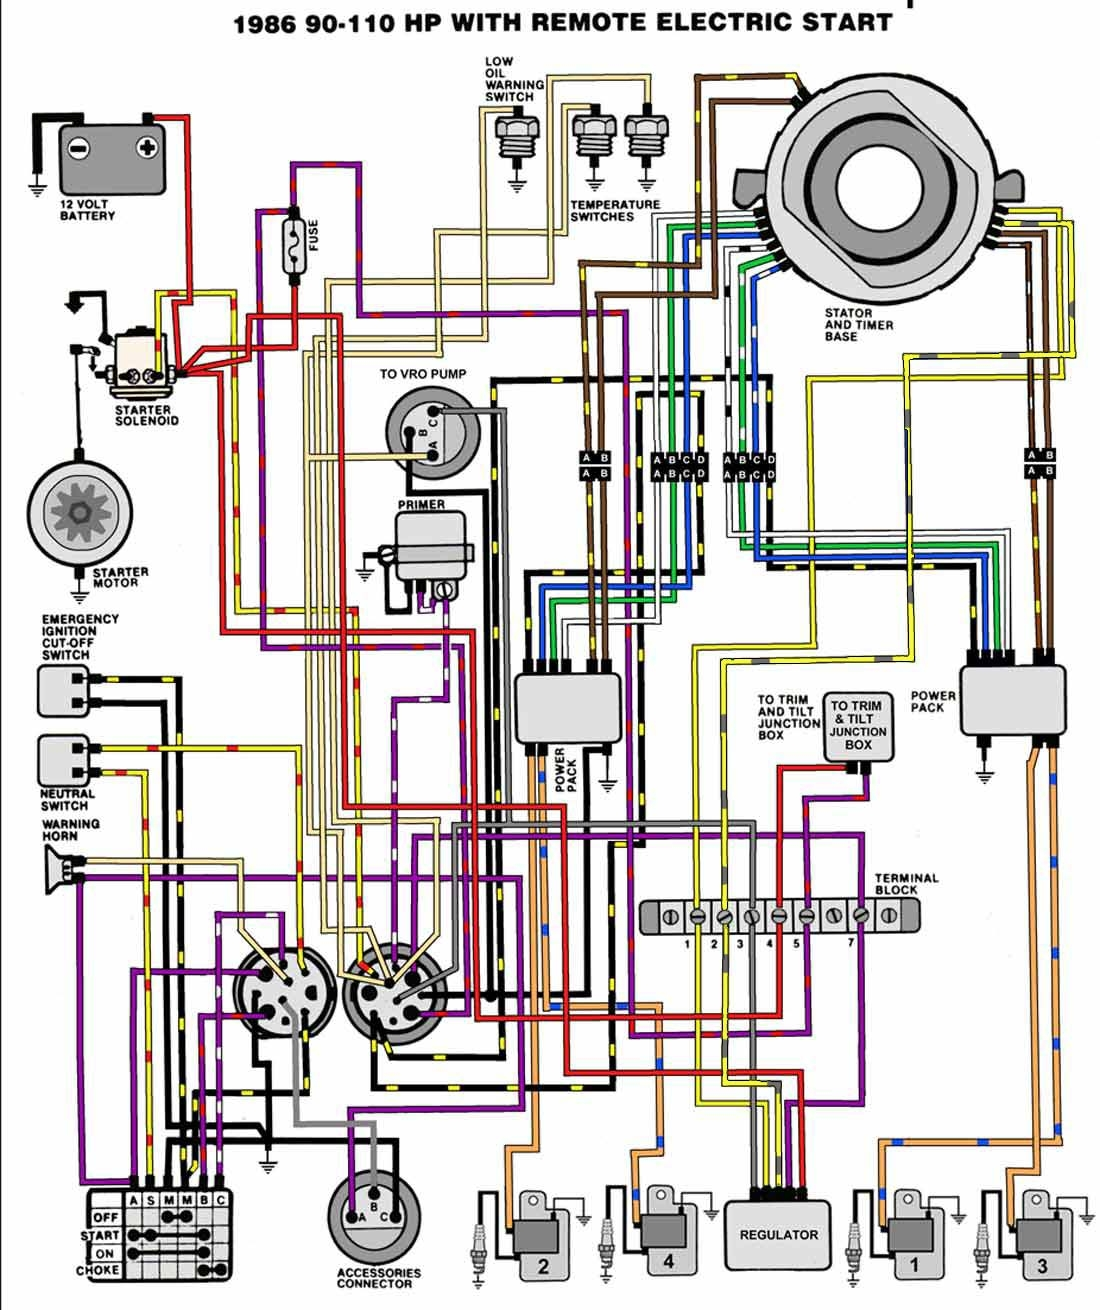 70 hp johnson outboard wiring diagram 20 hp johnson outboard wiring diagram